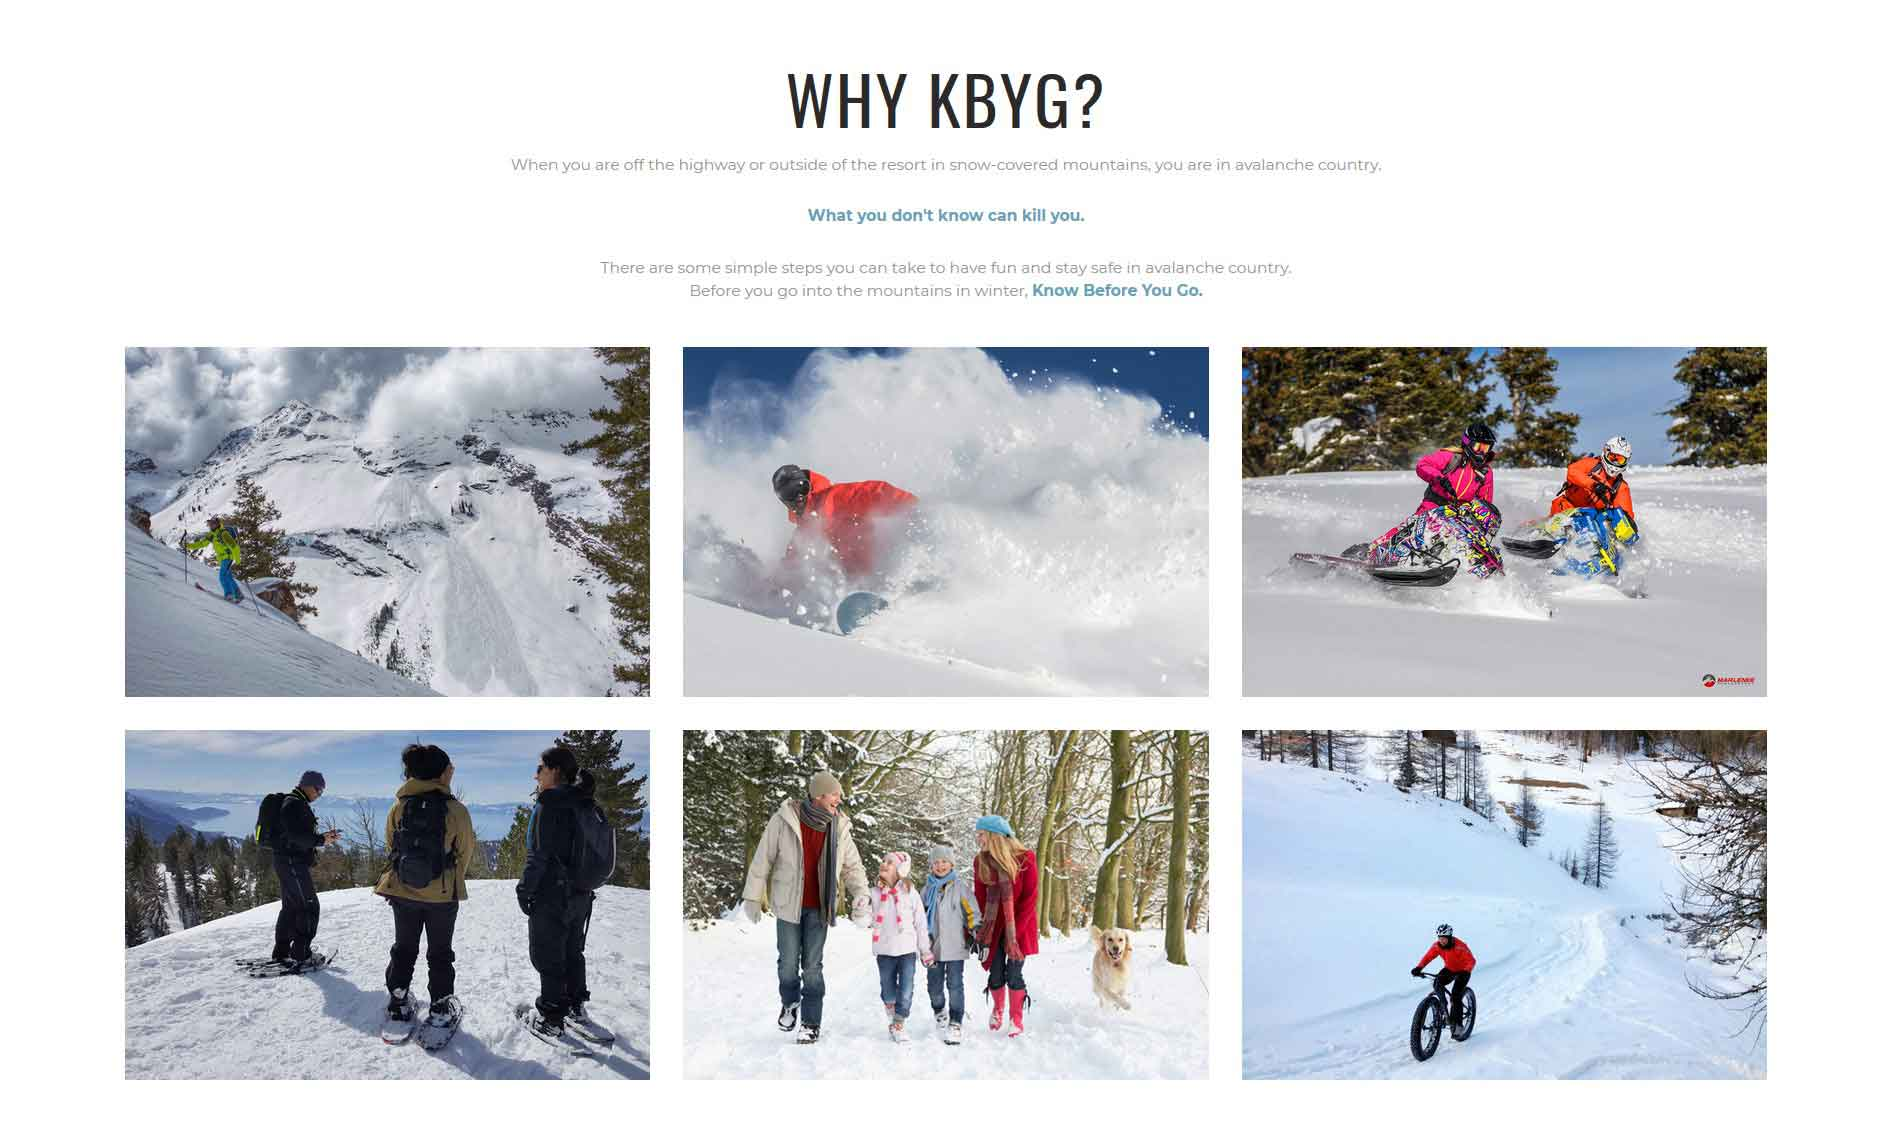 When You are off the highway or outside of the resort in snow-covered mountains, you are in avalanche country. What you don't know can kill you. There are some simple steps you can take to have fun and stay safe in avalanche country. Before you go into the mountains in winter, Know Before You Go.